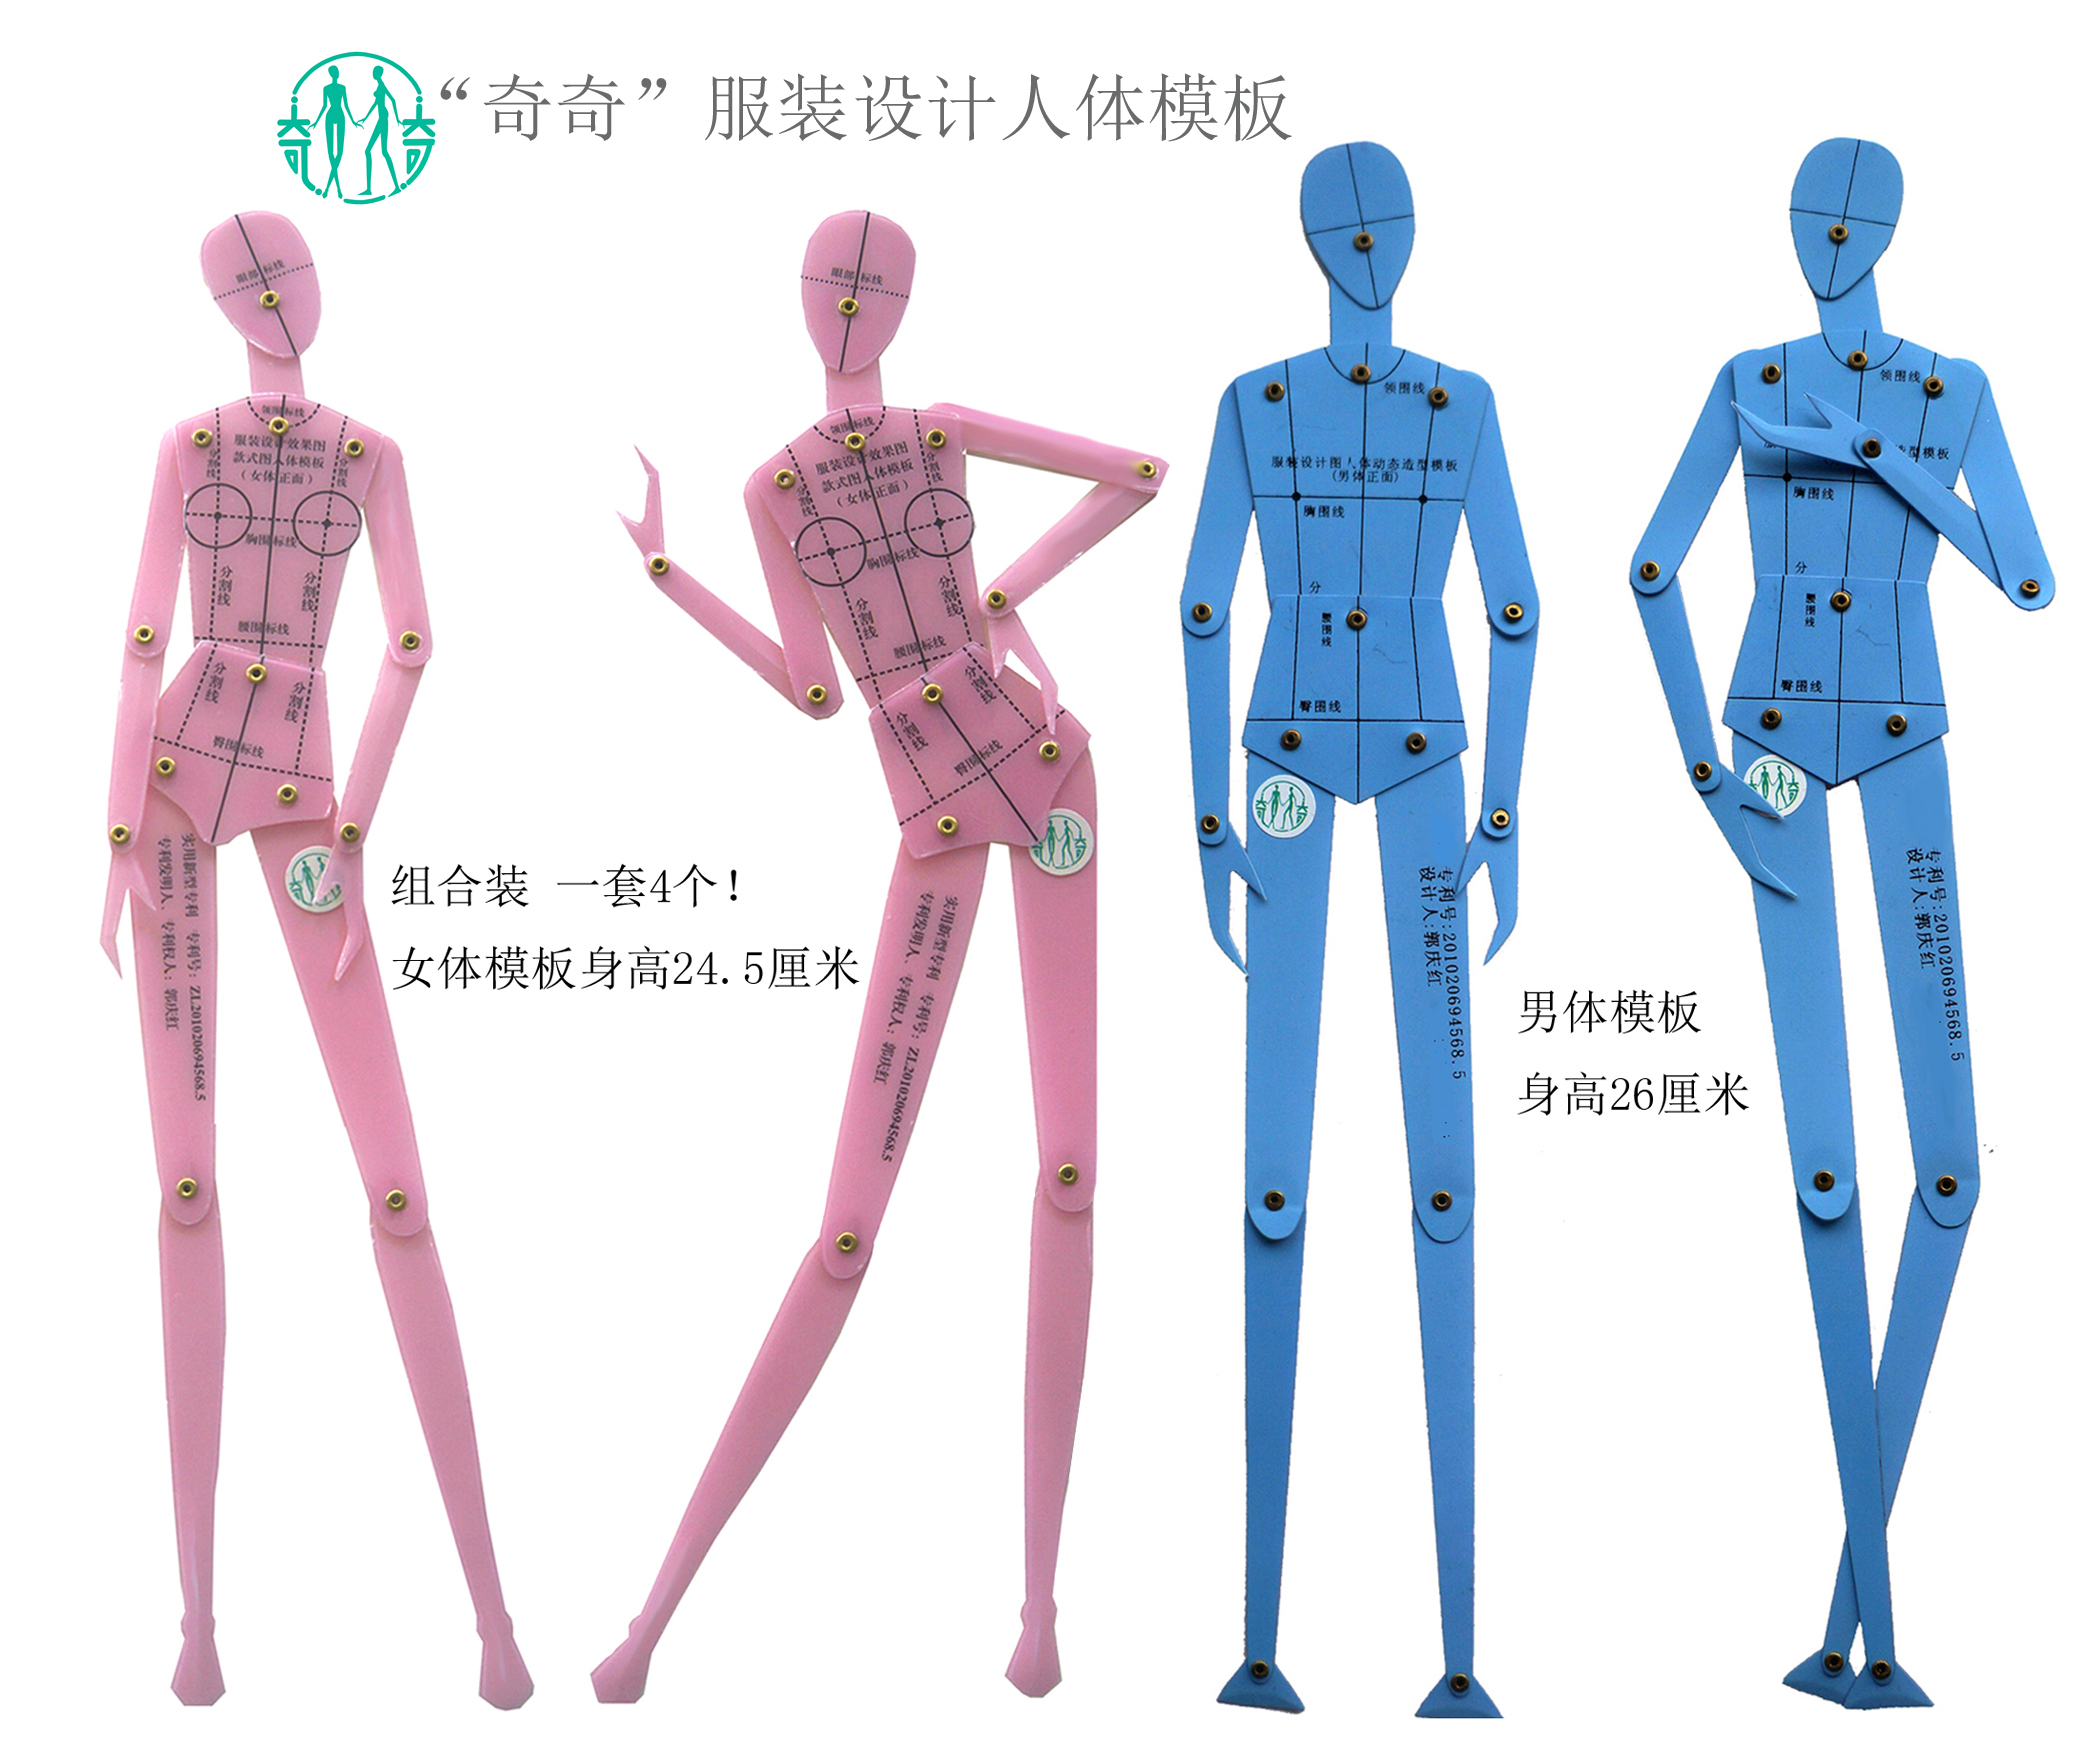 4Pcs Fashion Drawing Ruler Garment Design Of Human Body Dynamic Hand Drawing Template Ruler Women Effect Drawing Style